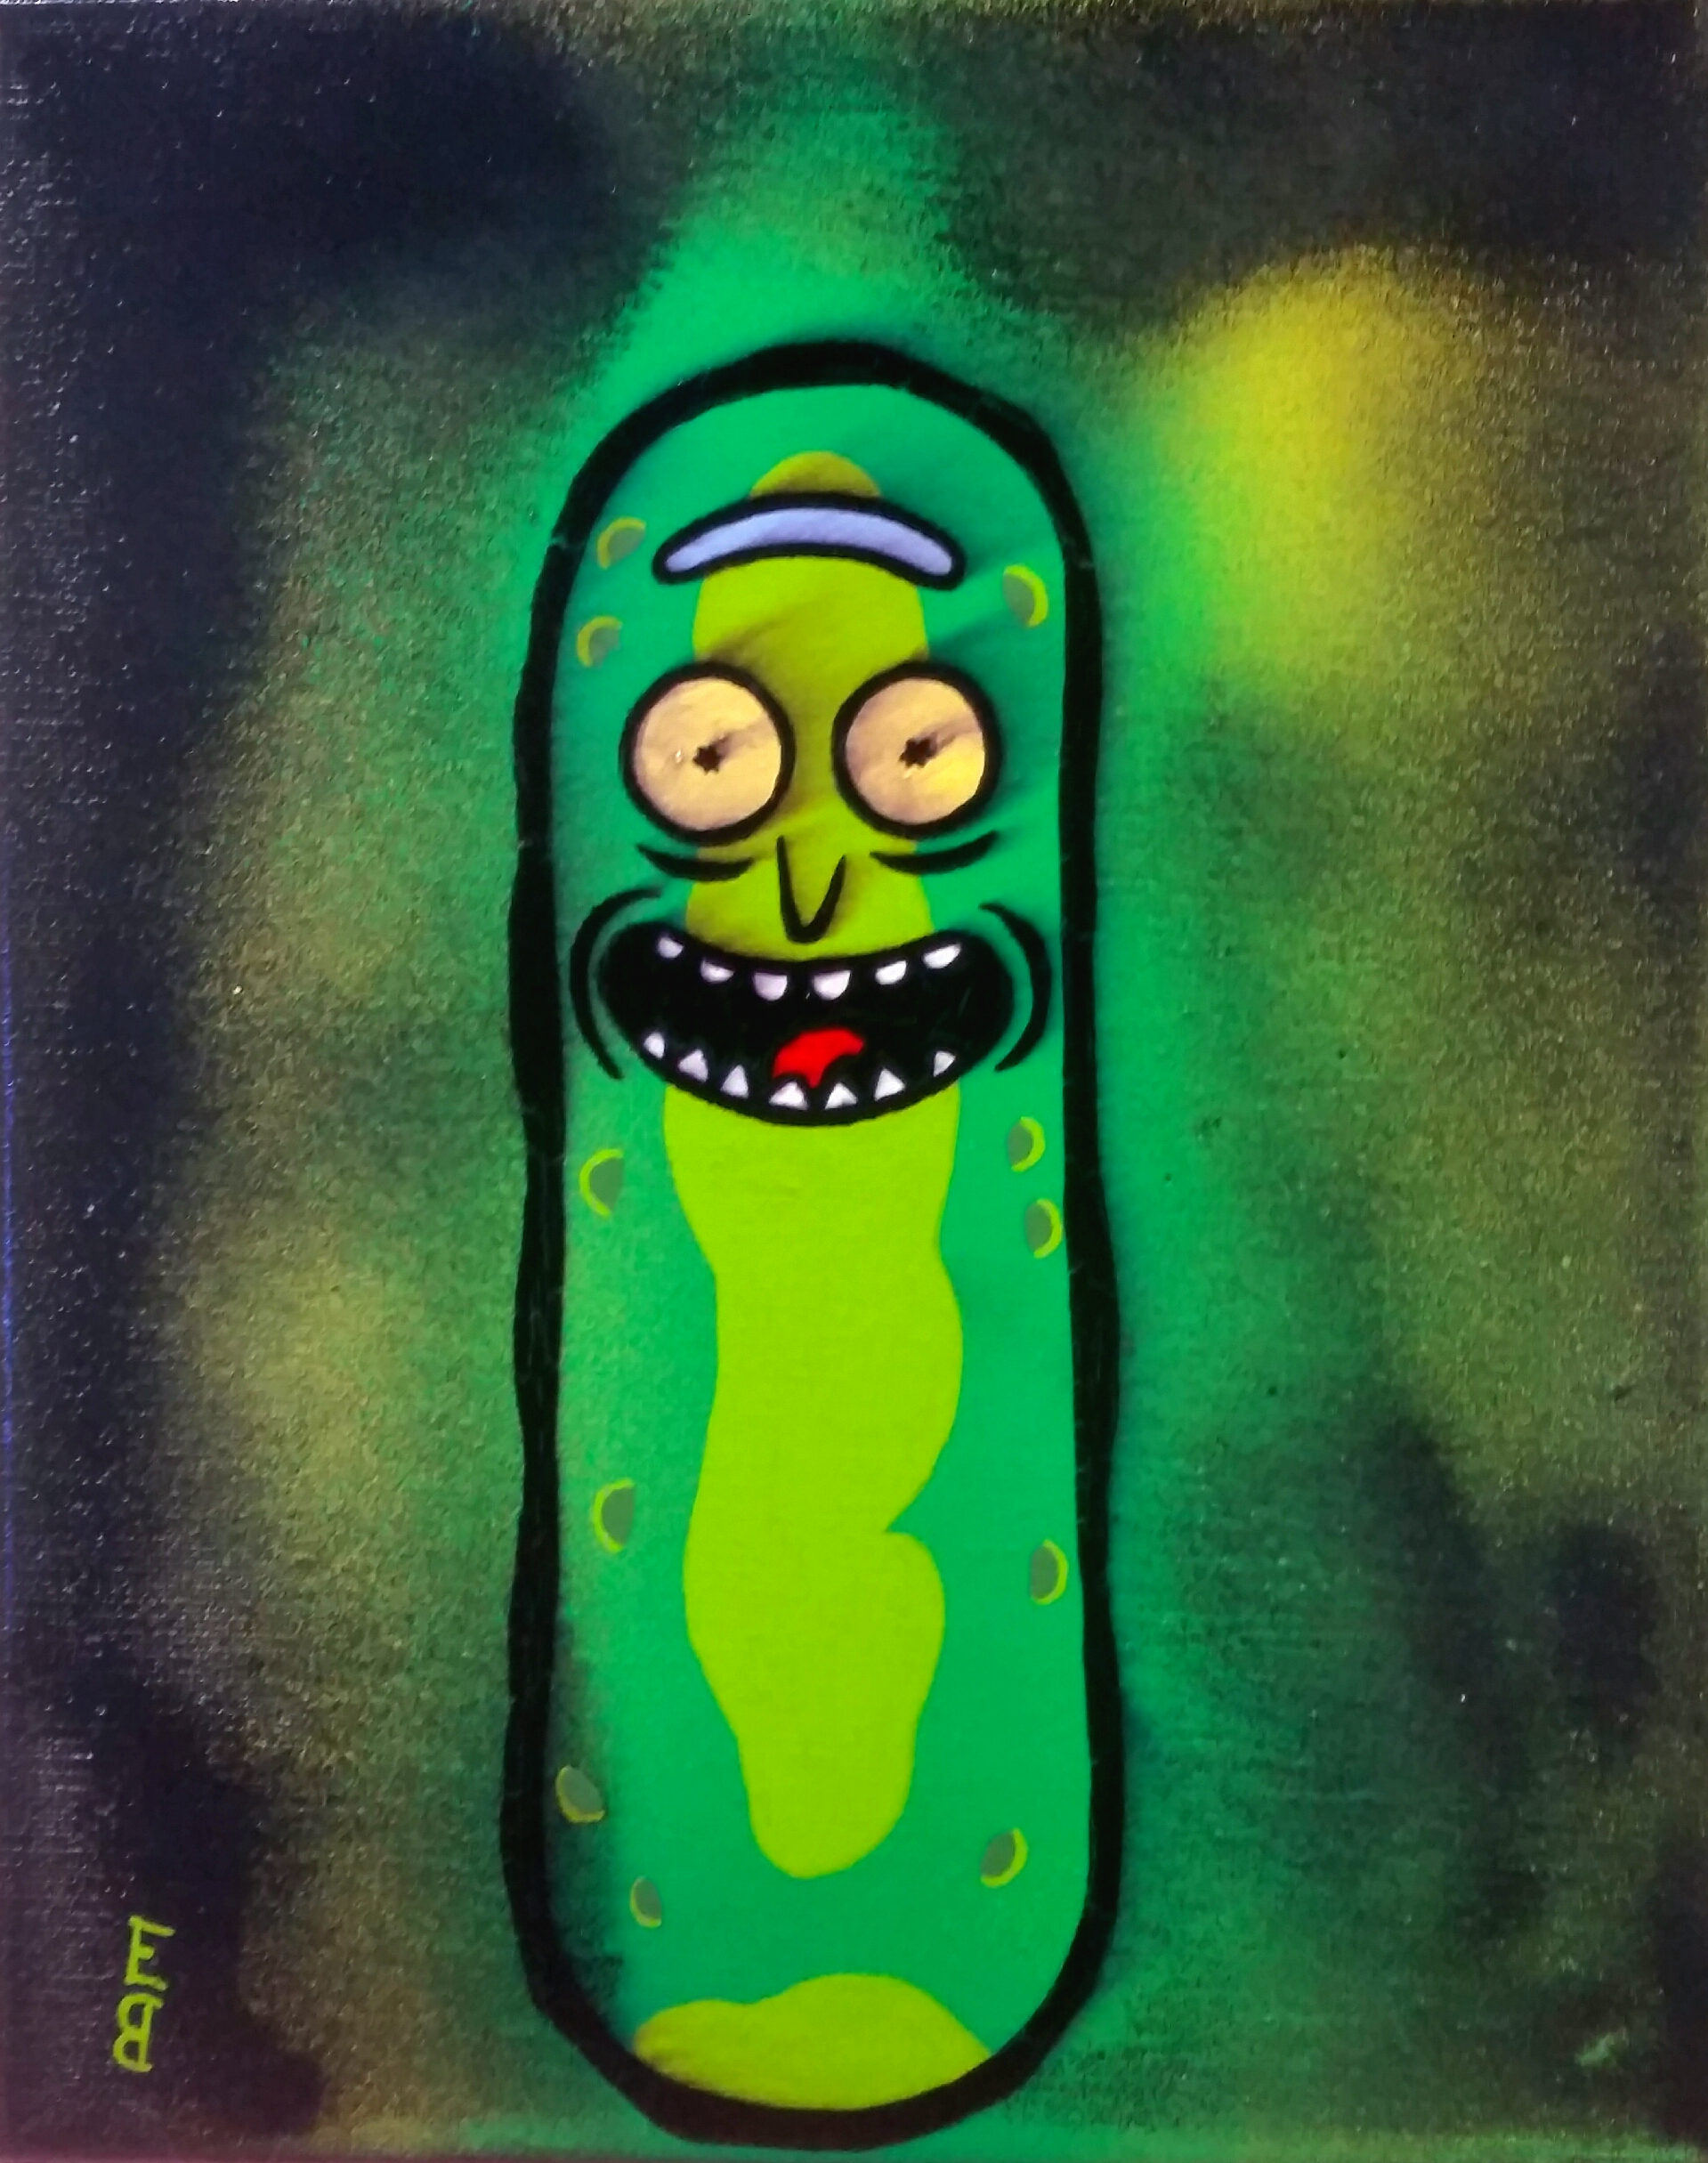 Pickle RIIICK!